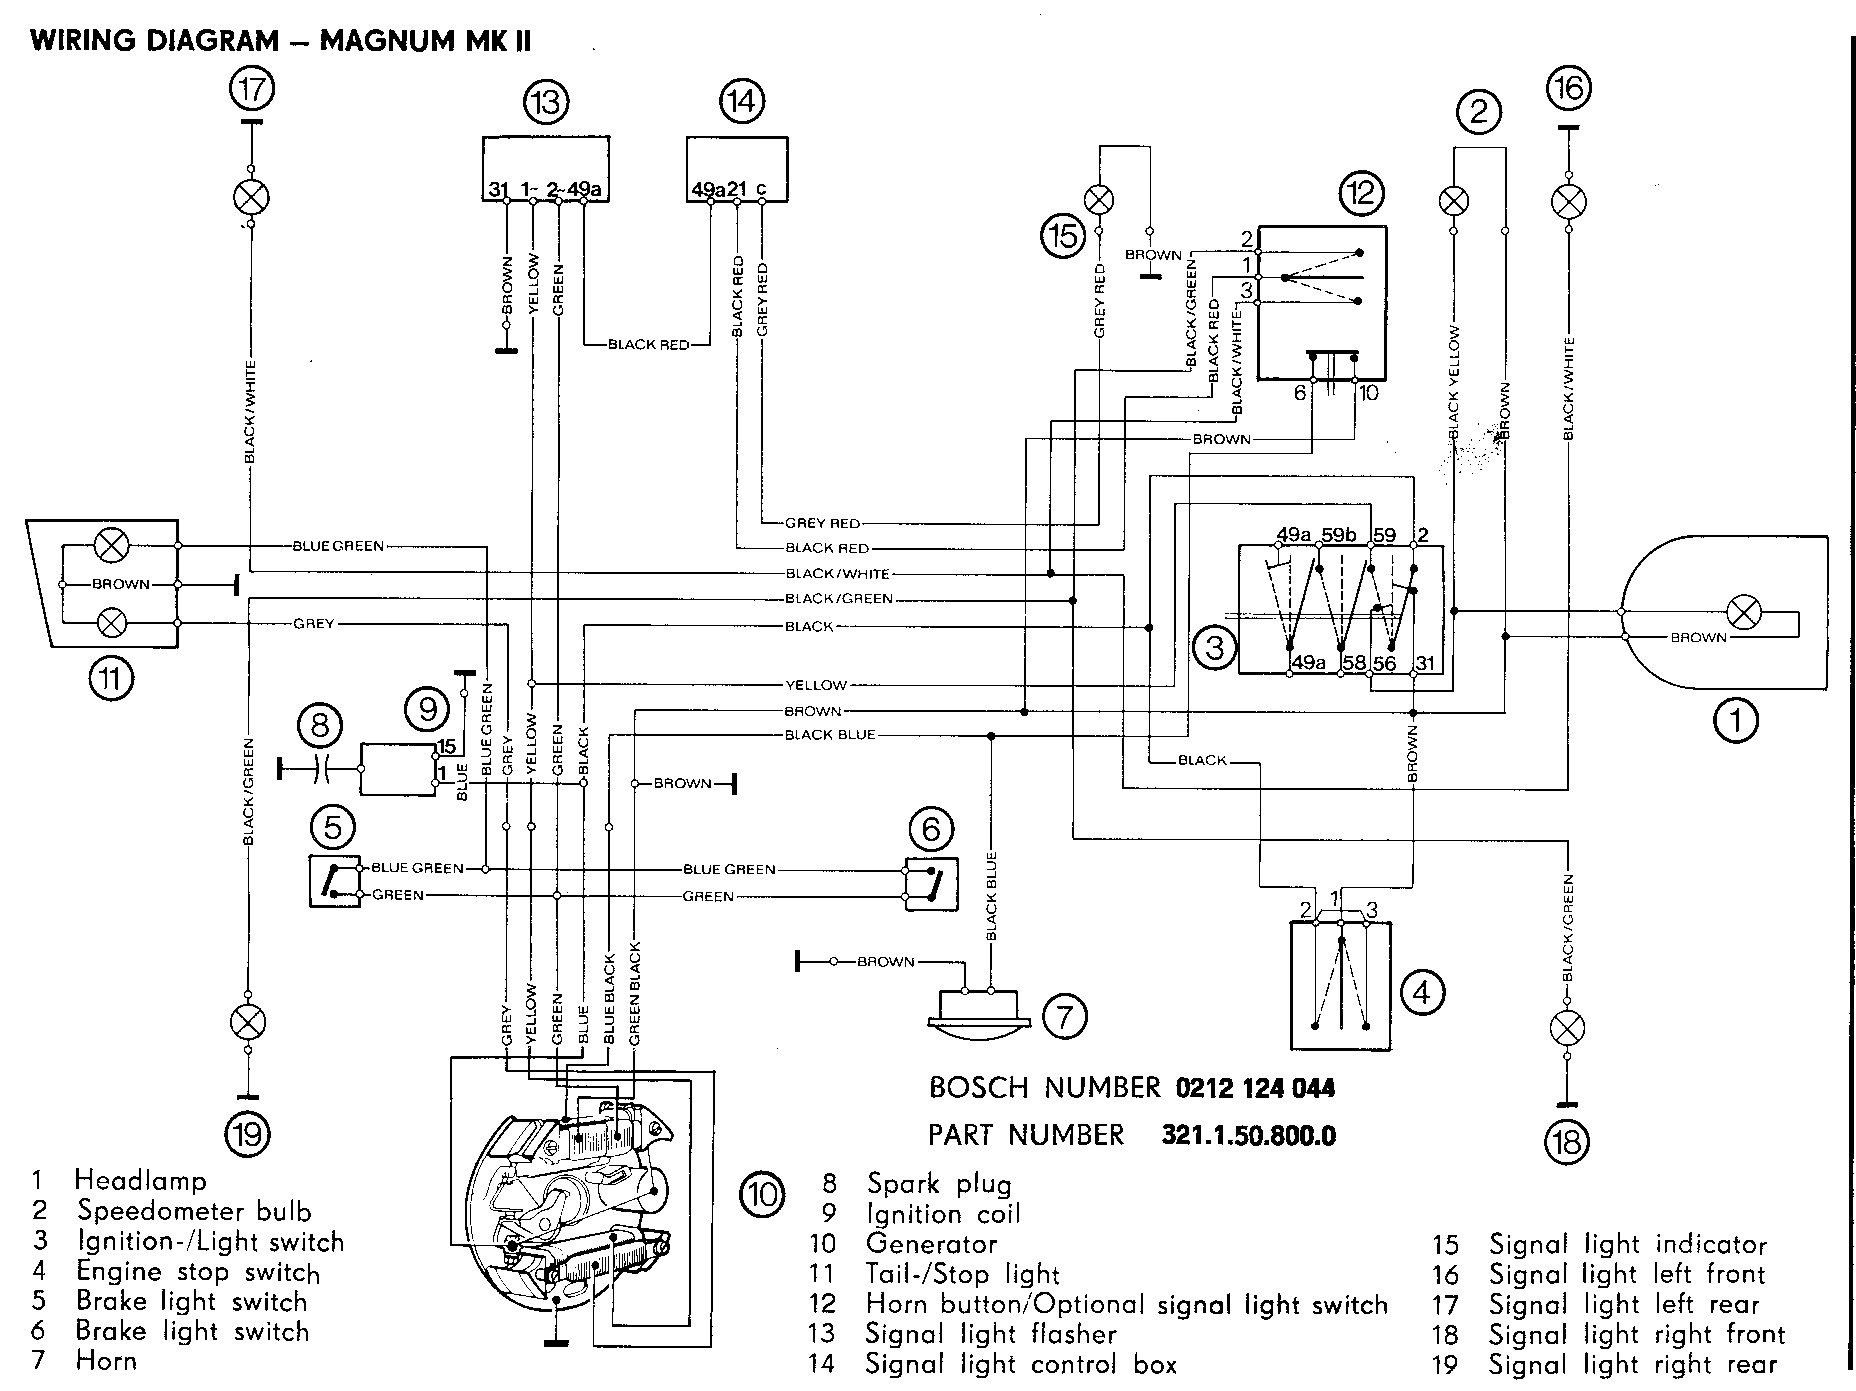 1997 dodge dakota tail light wiring diagram 4 pin rectifier magnum turn signal get free image